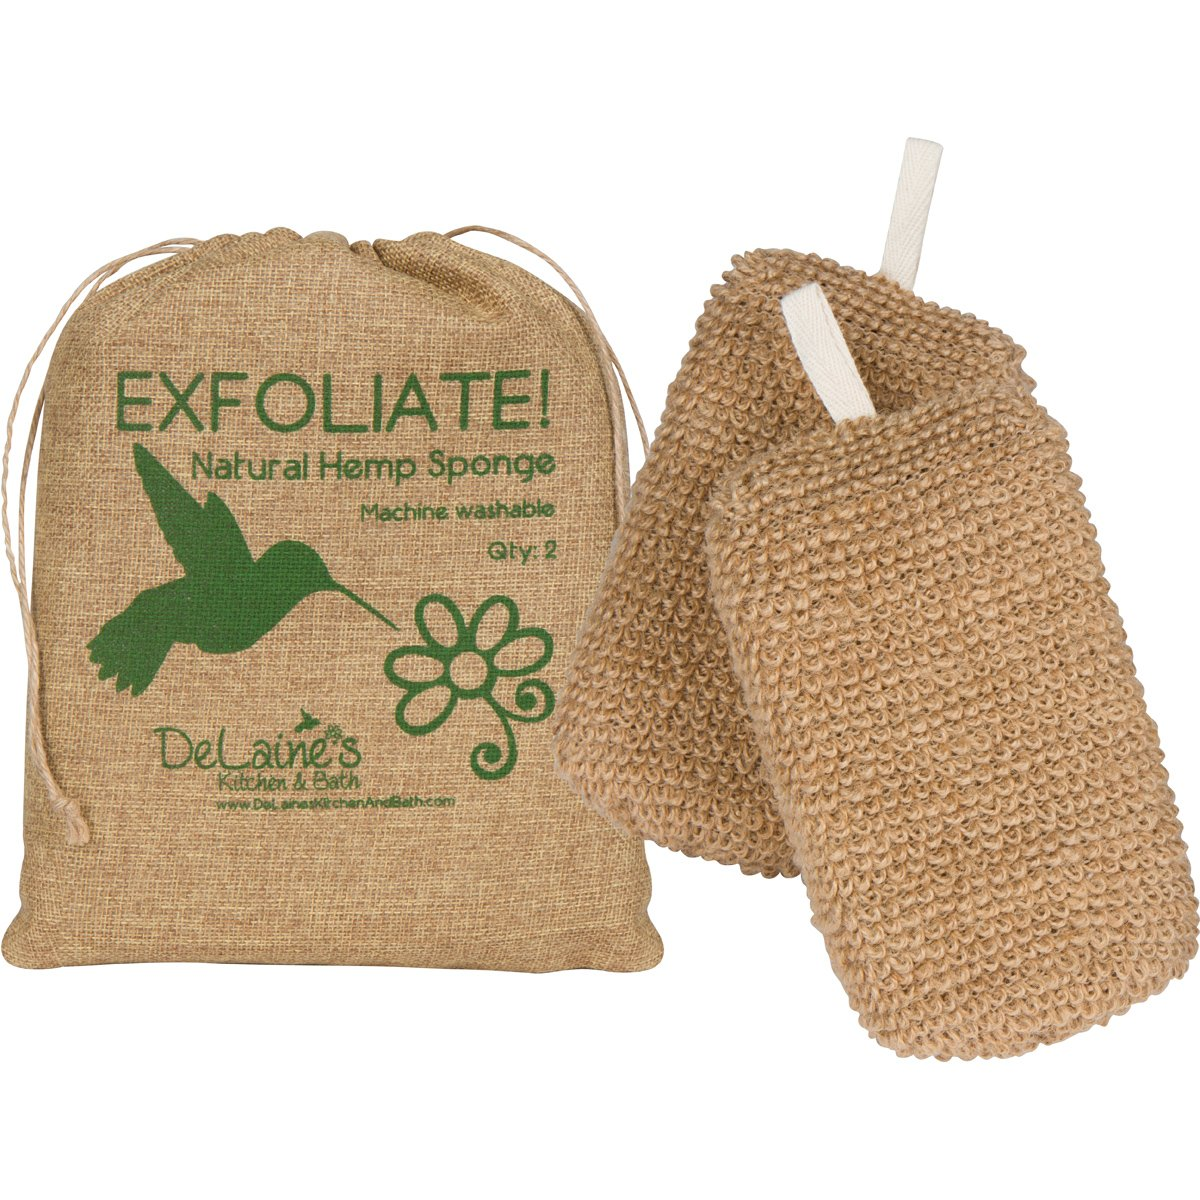 Amazon.com: DeLaine\'s Exfoliating Body Scrubber - Natural Hemp ...